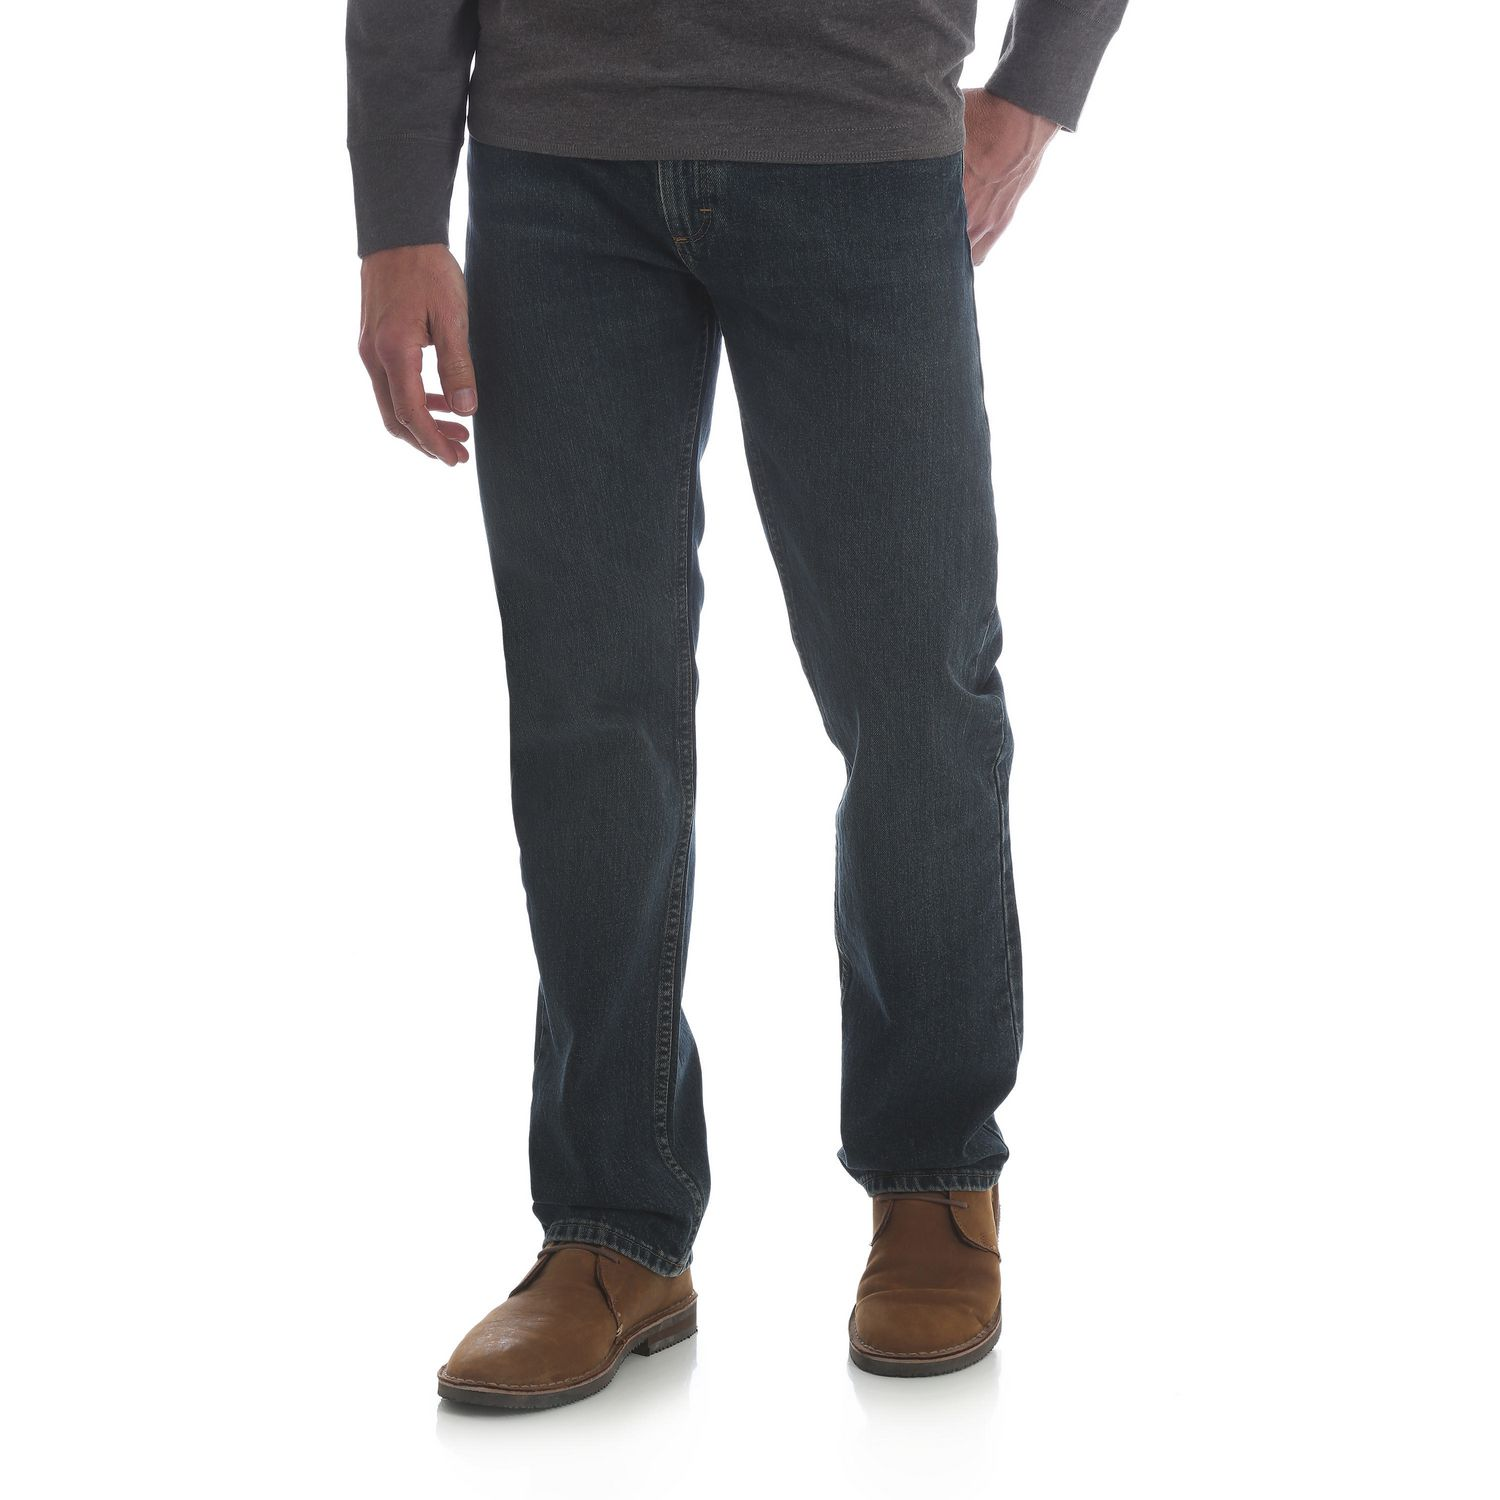 d3ff5b0d Wrangler Men's Straight Fit Jeans - image 1 of 6 zoomed image